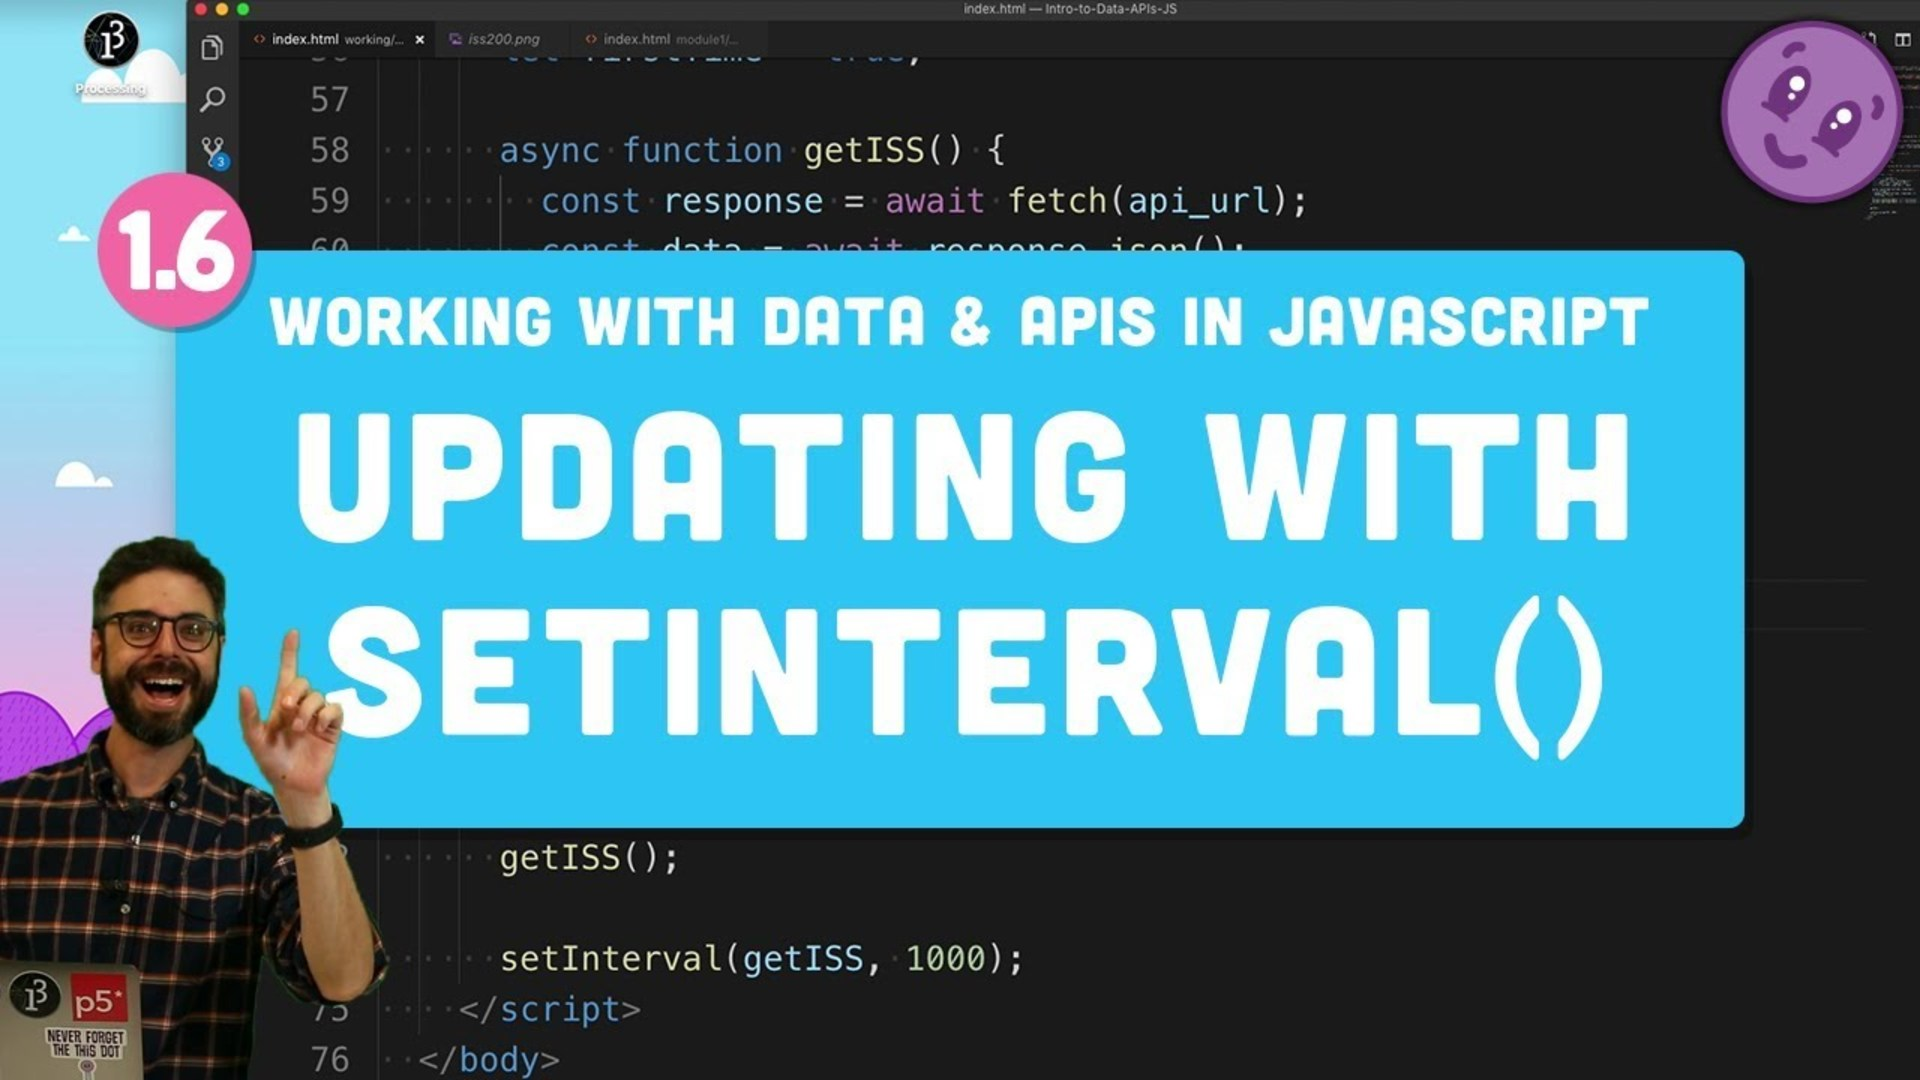 1 6 Refreshing Data with setInterval() - Working with Data and APIs